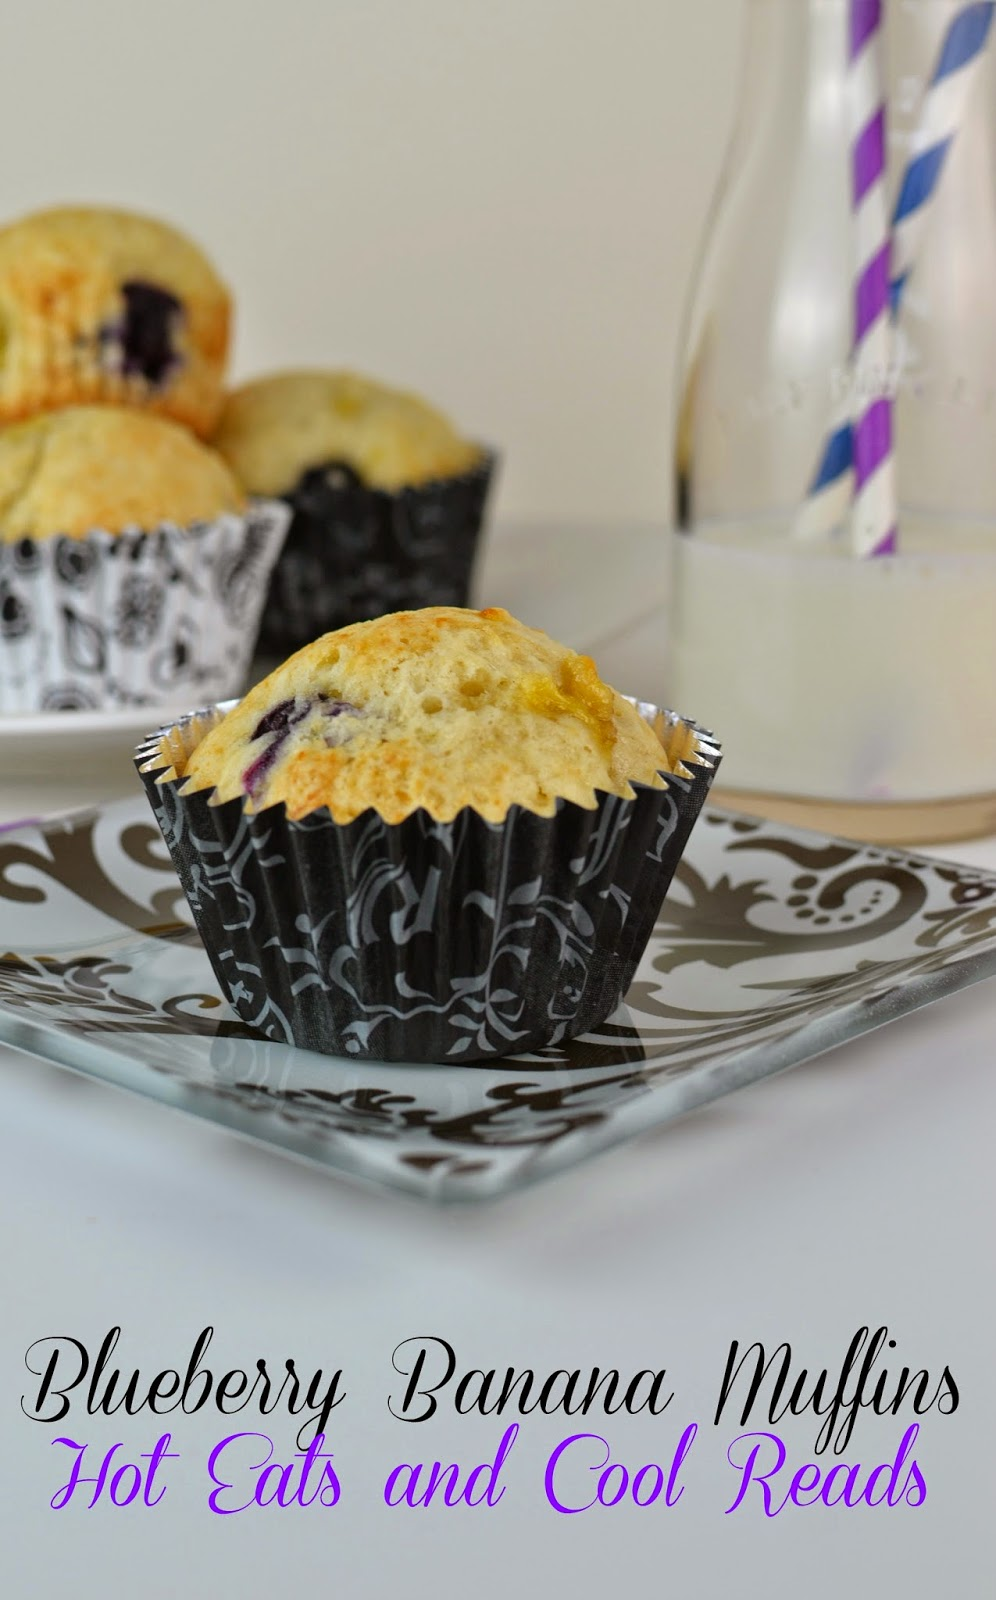 Delicious and flavorful muffins! Perfect for breakfast or a snack, especially fresh out of the oven! Blueberry Banana Muffins from Hot Eats and Cool Reads